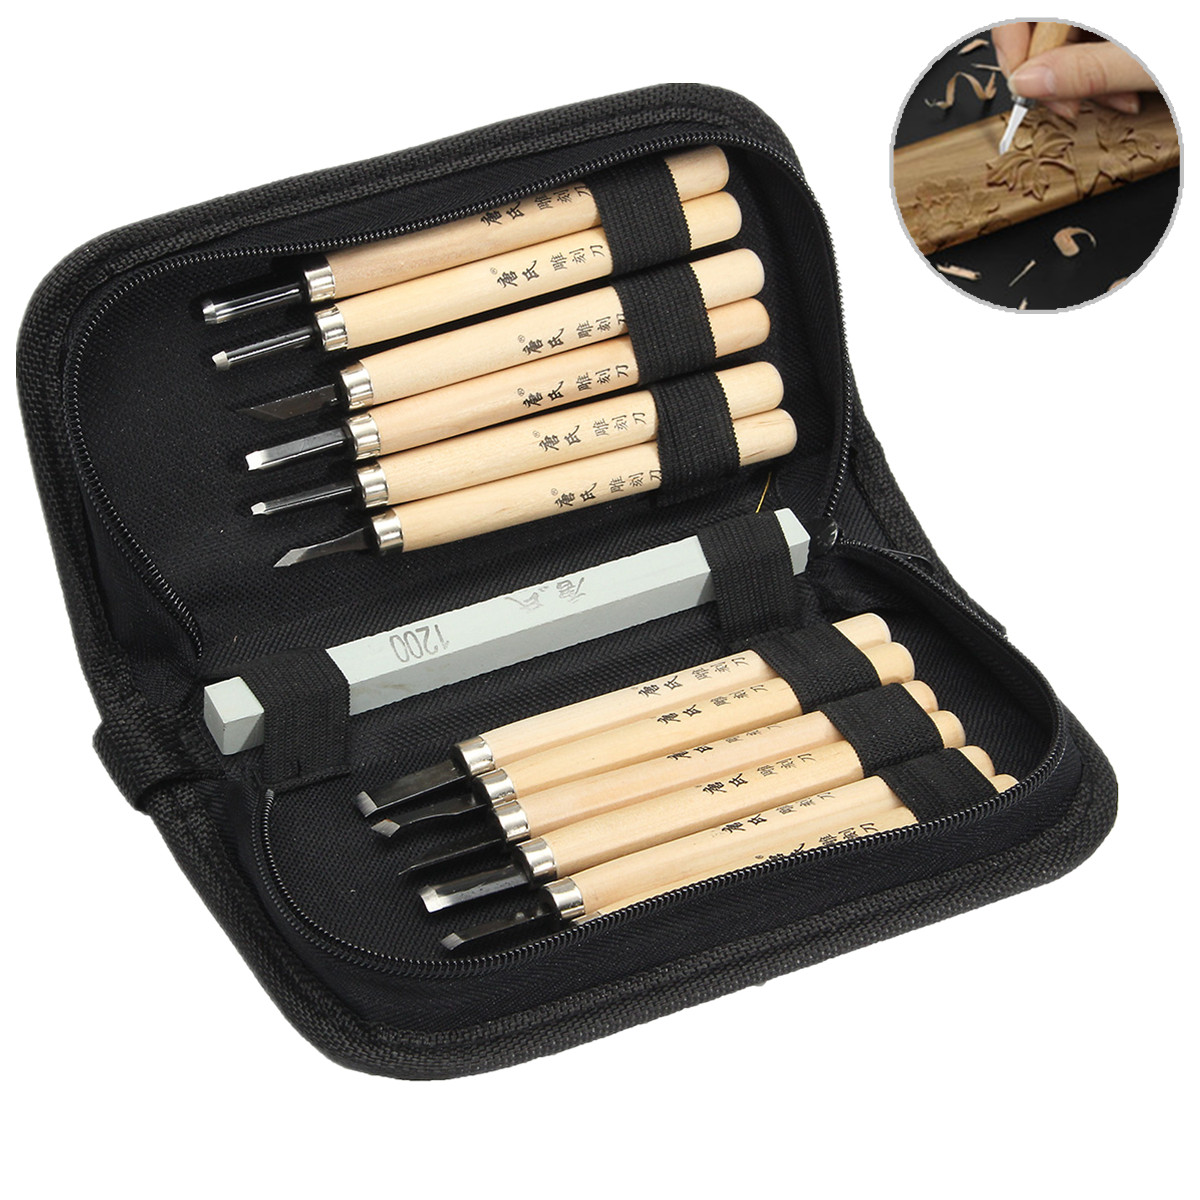 Tools Doersupp 12pcs Universal Professional Wood Carving Chisel Set Including Grindstone Apply For Wax Plaster Clay Similar Materials Hand Tool Sets